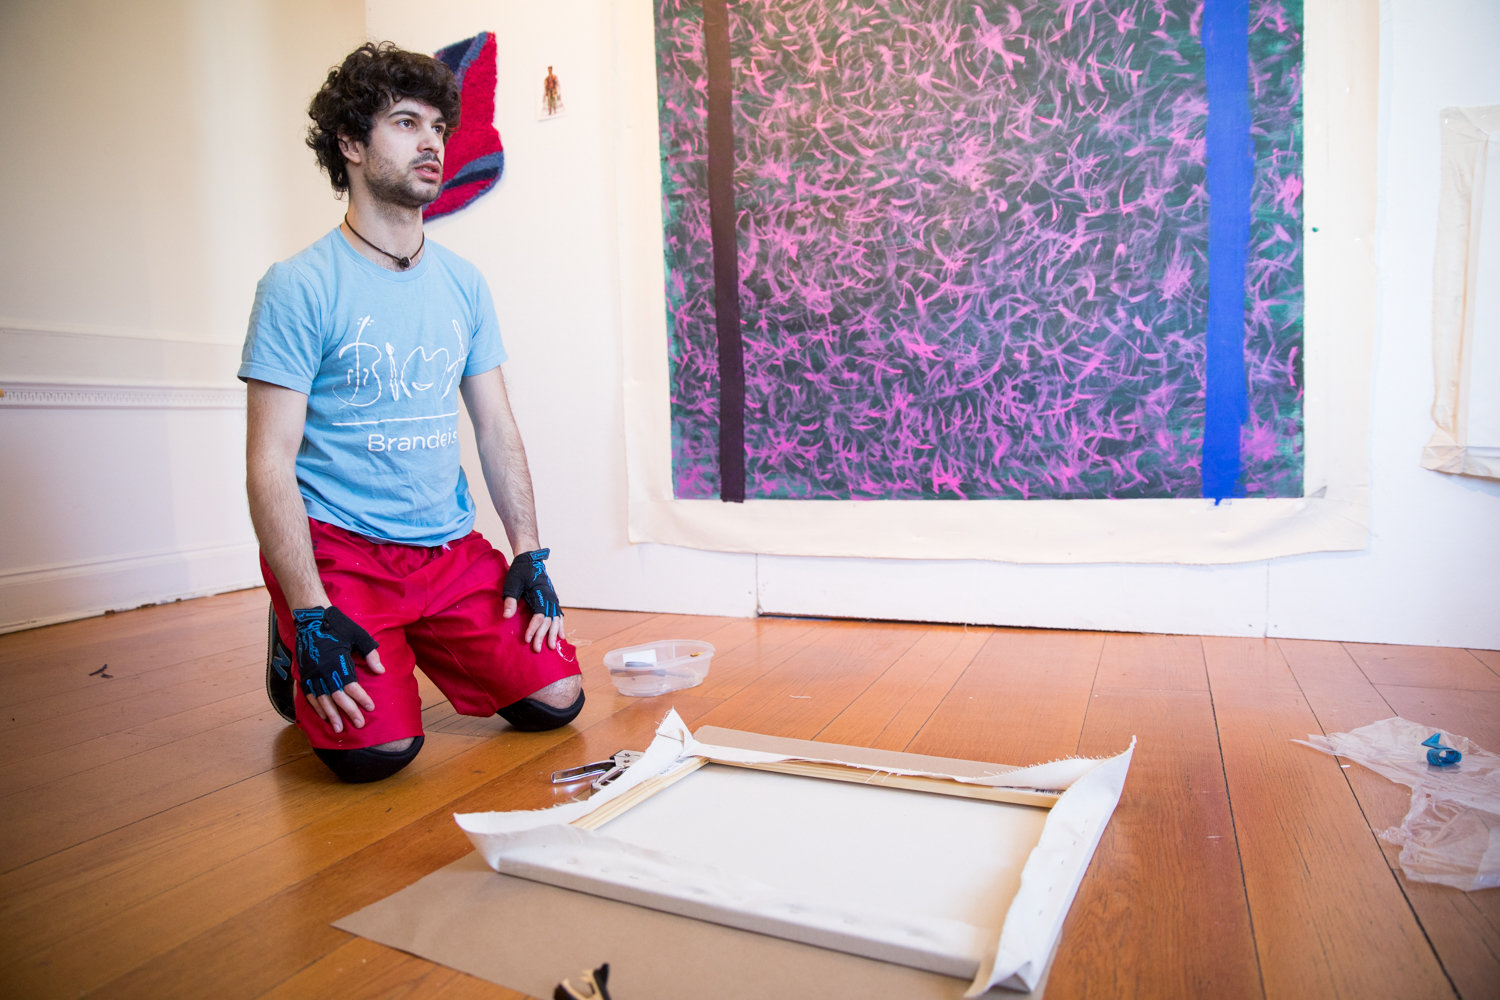 Ezra Benus talks about how medication serves as a jumping off point for the art he is creating as part of his Winter Workspace residency at Wave Hill.